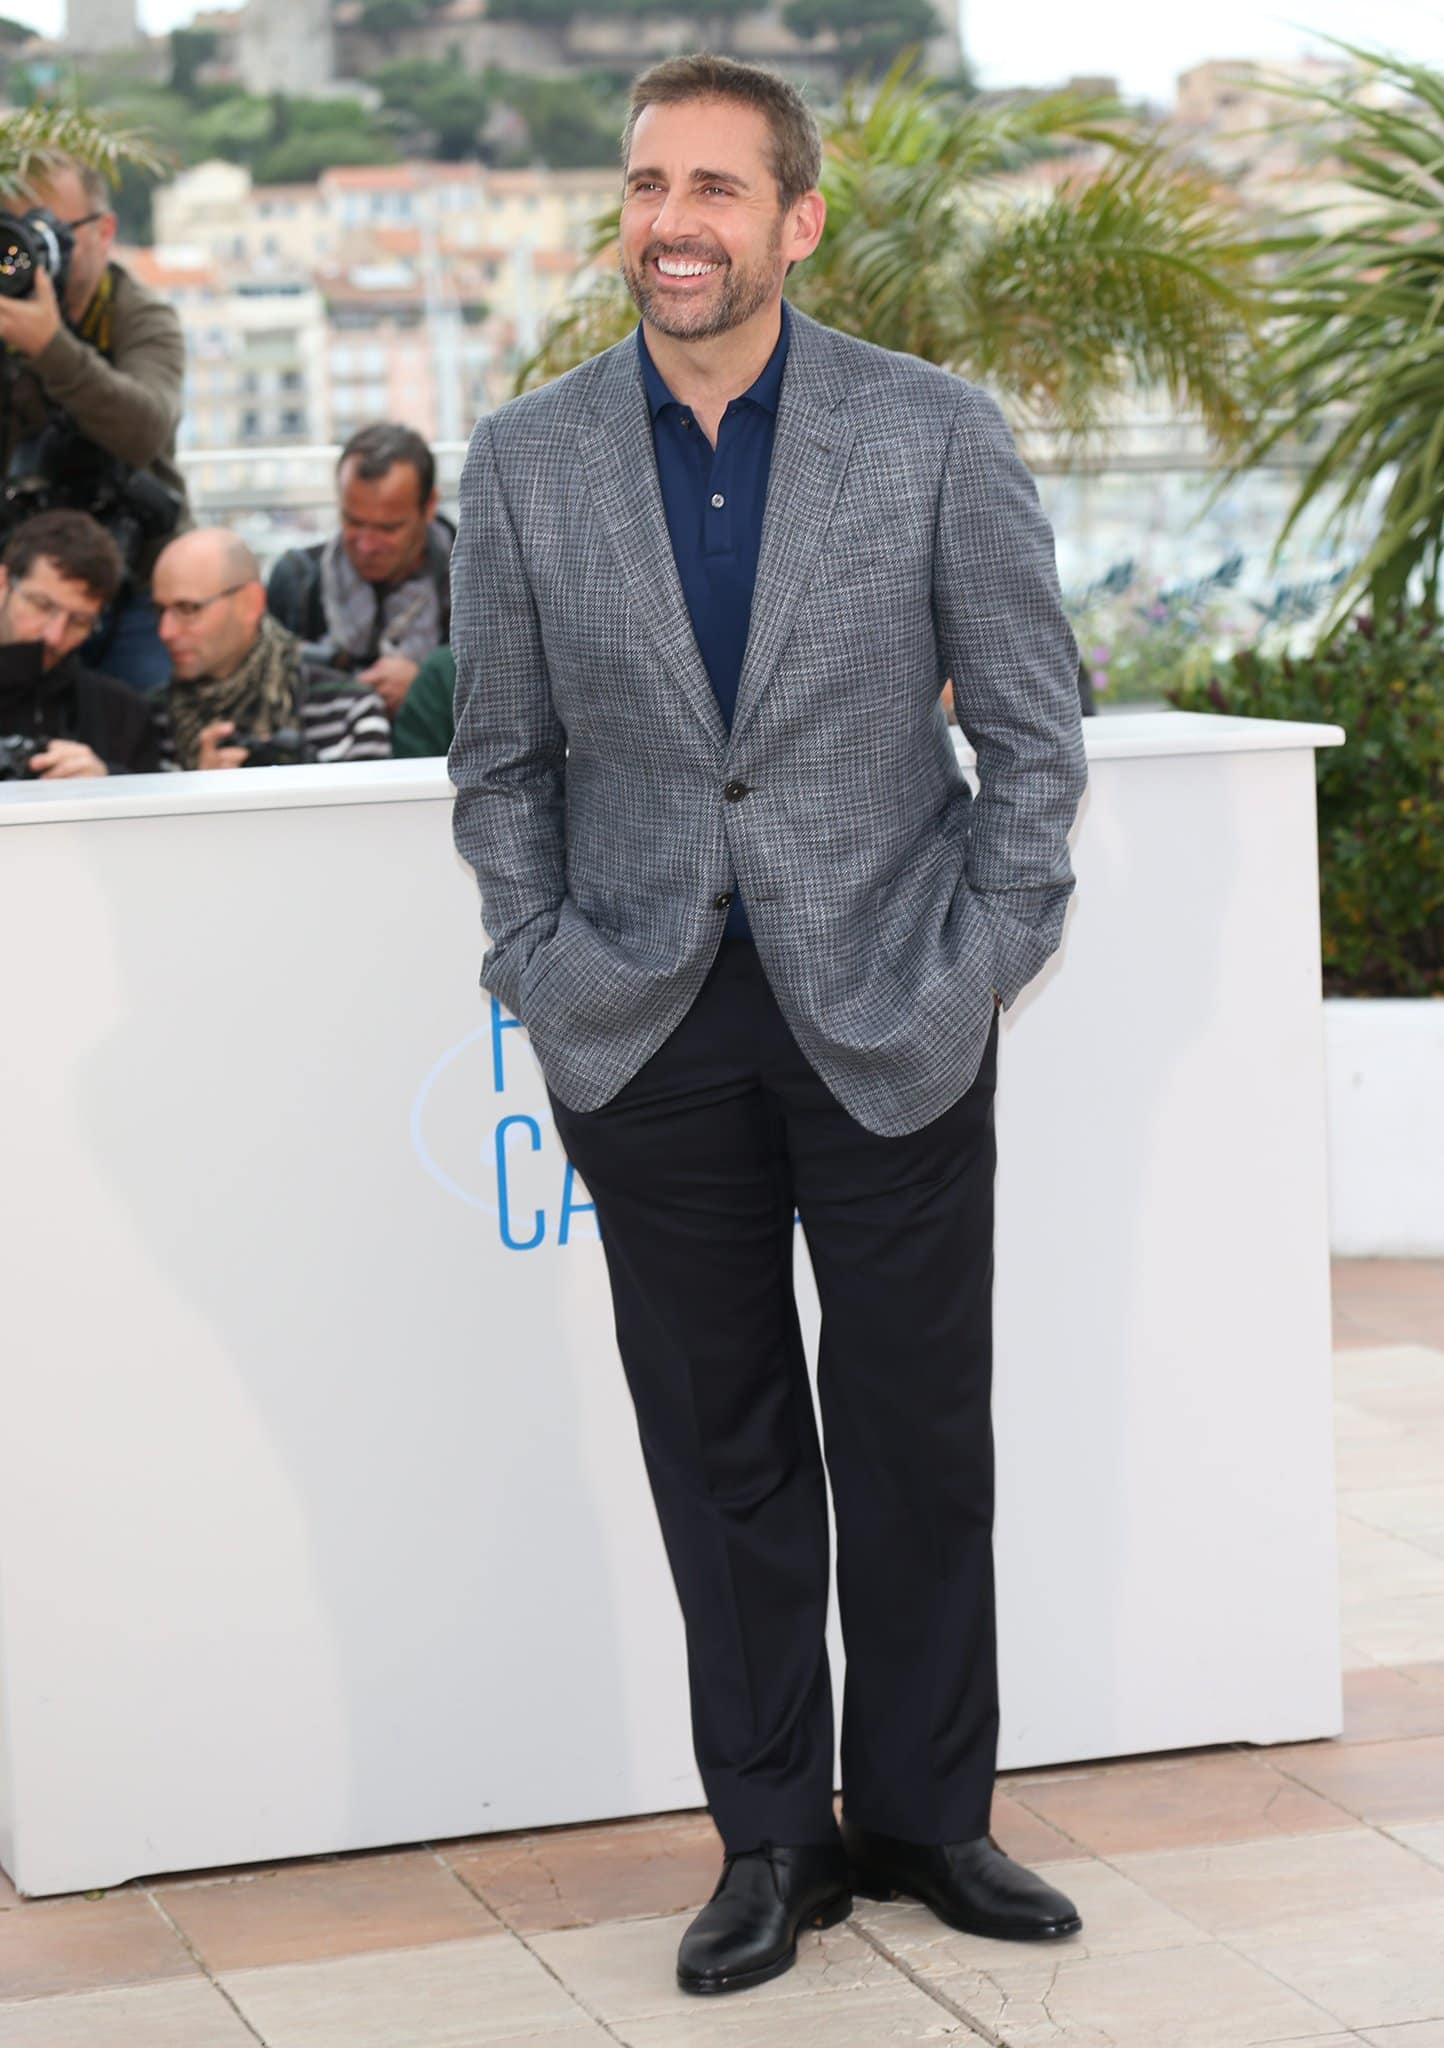 Steve Carell received Academy Award and Golden Globe nominations for his role in the biographical sports drama Foxcatcher in 2014